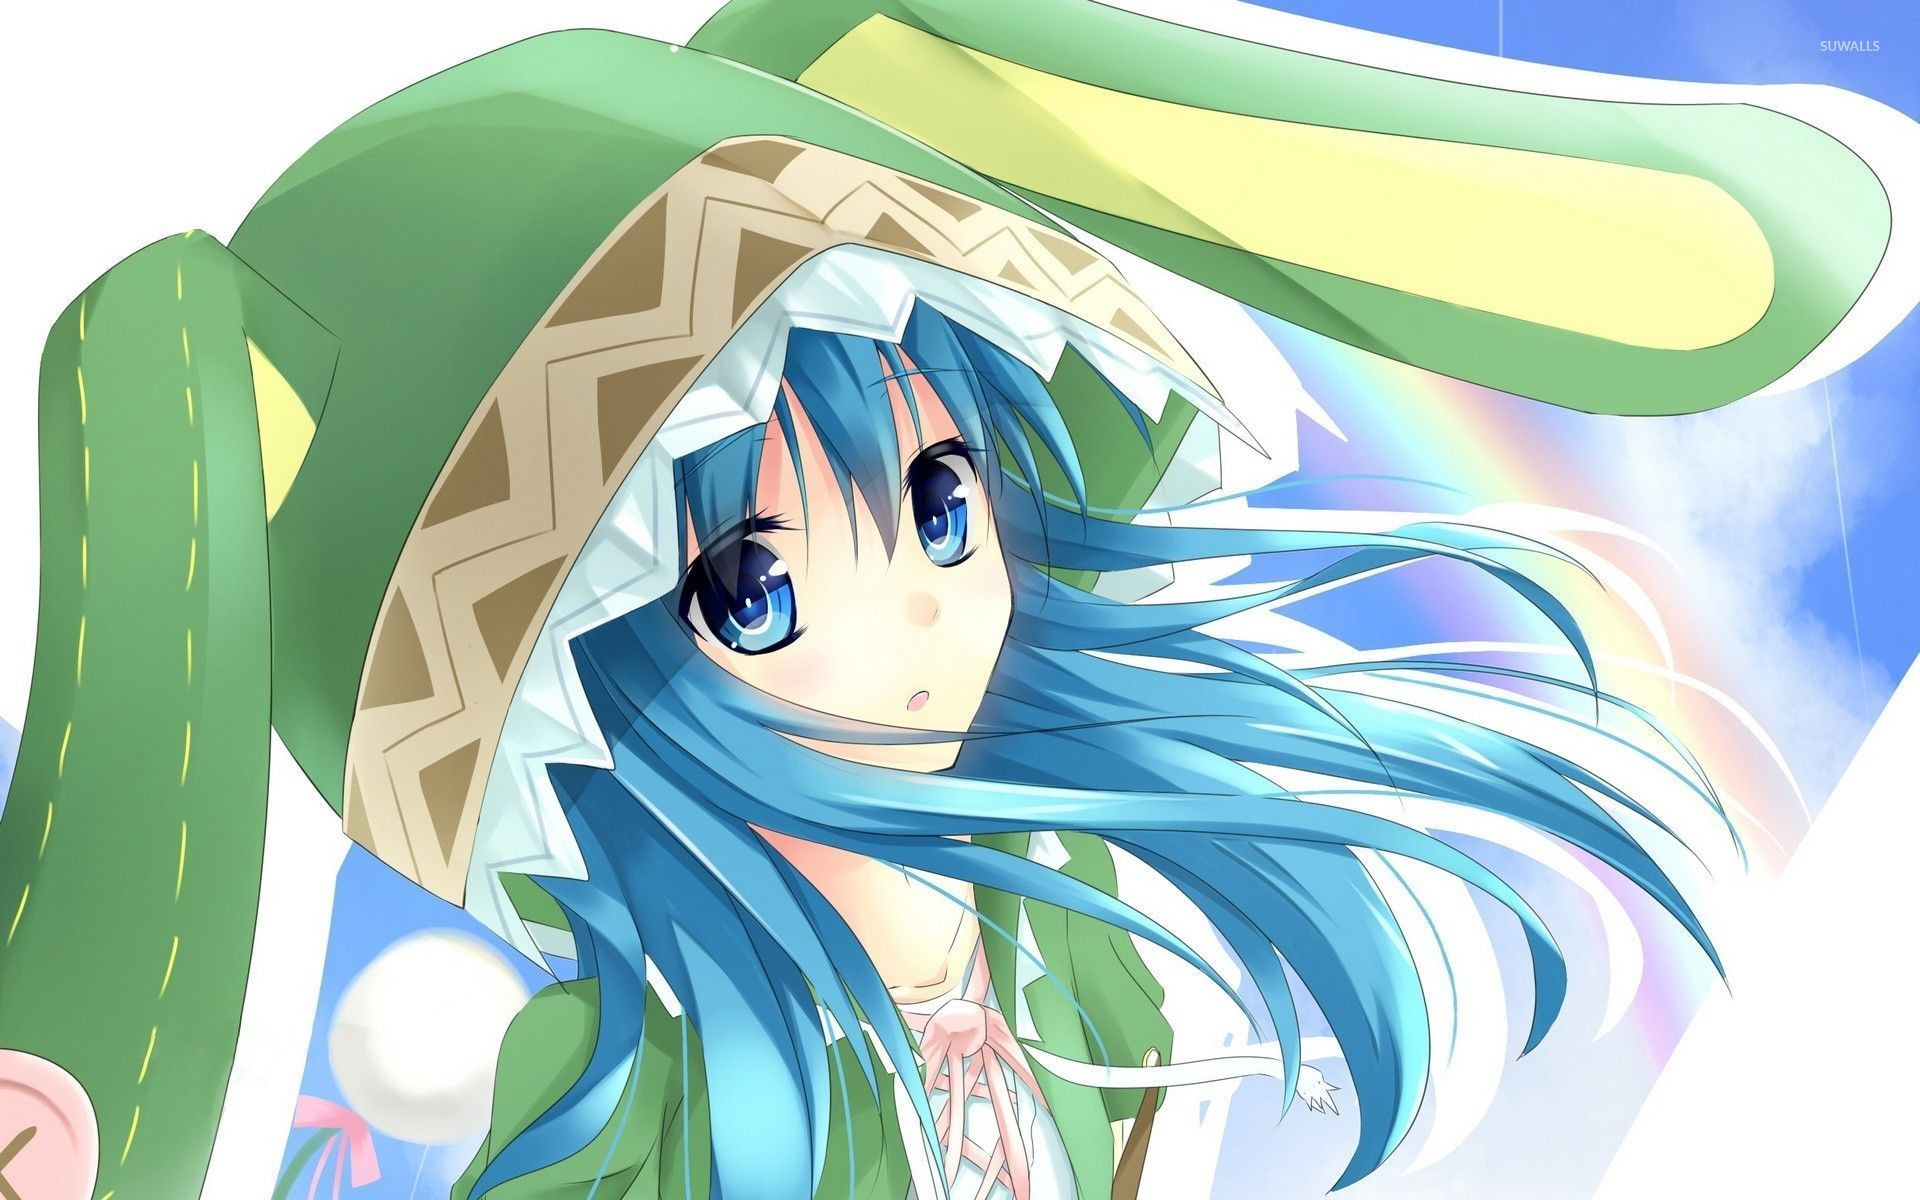 1920x1200 Yoshino - Date A Live wallpaper